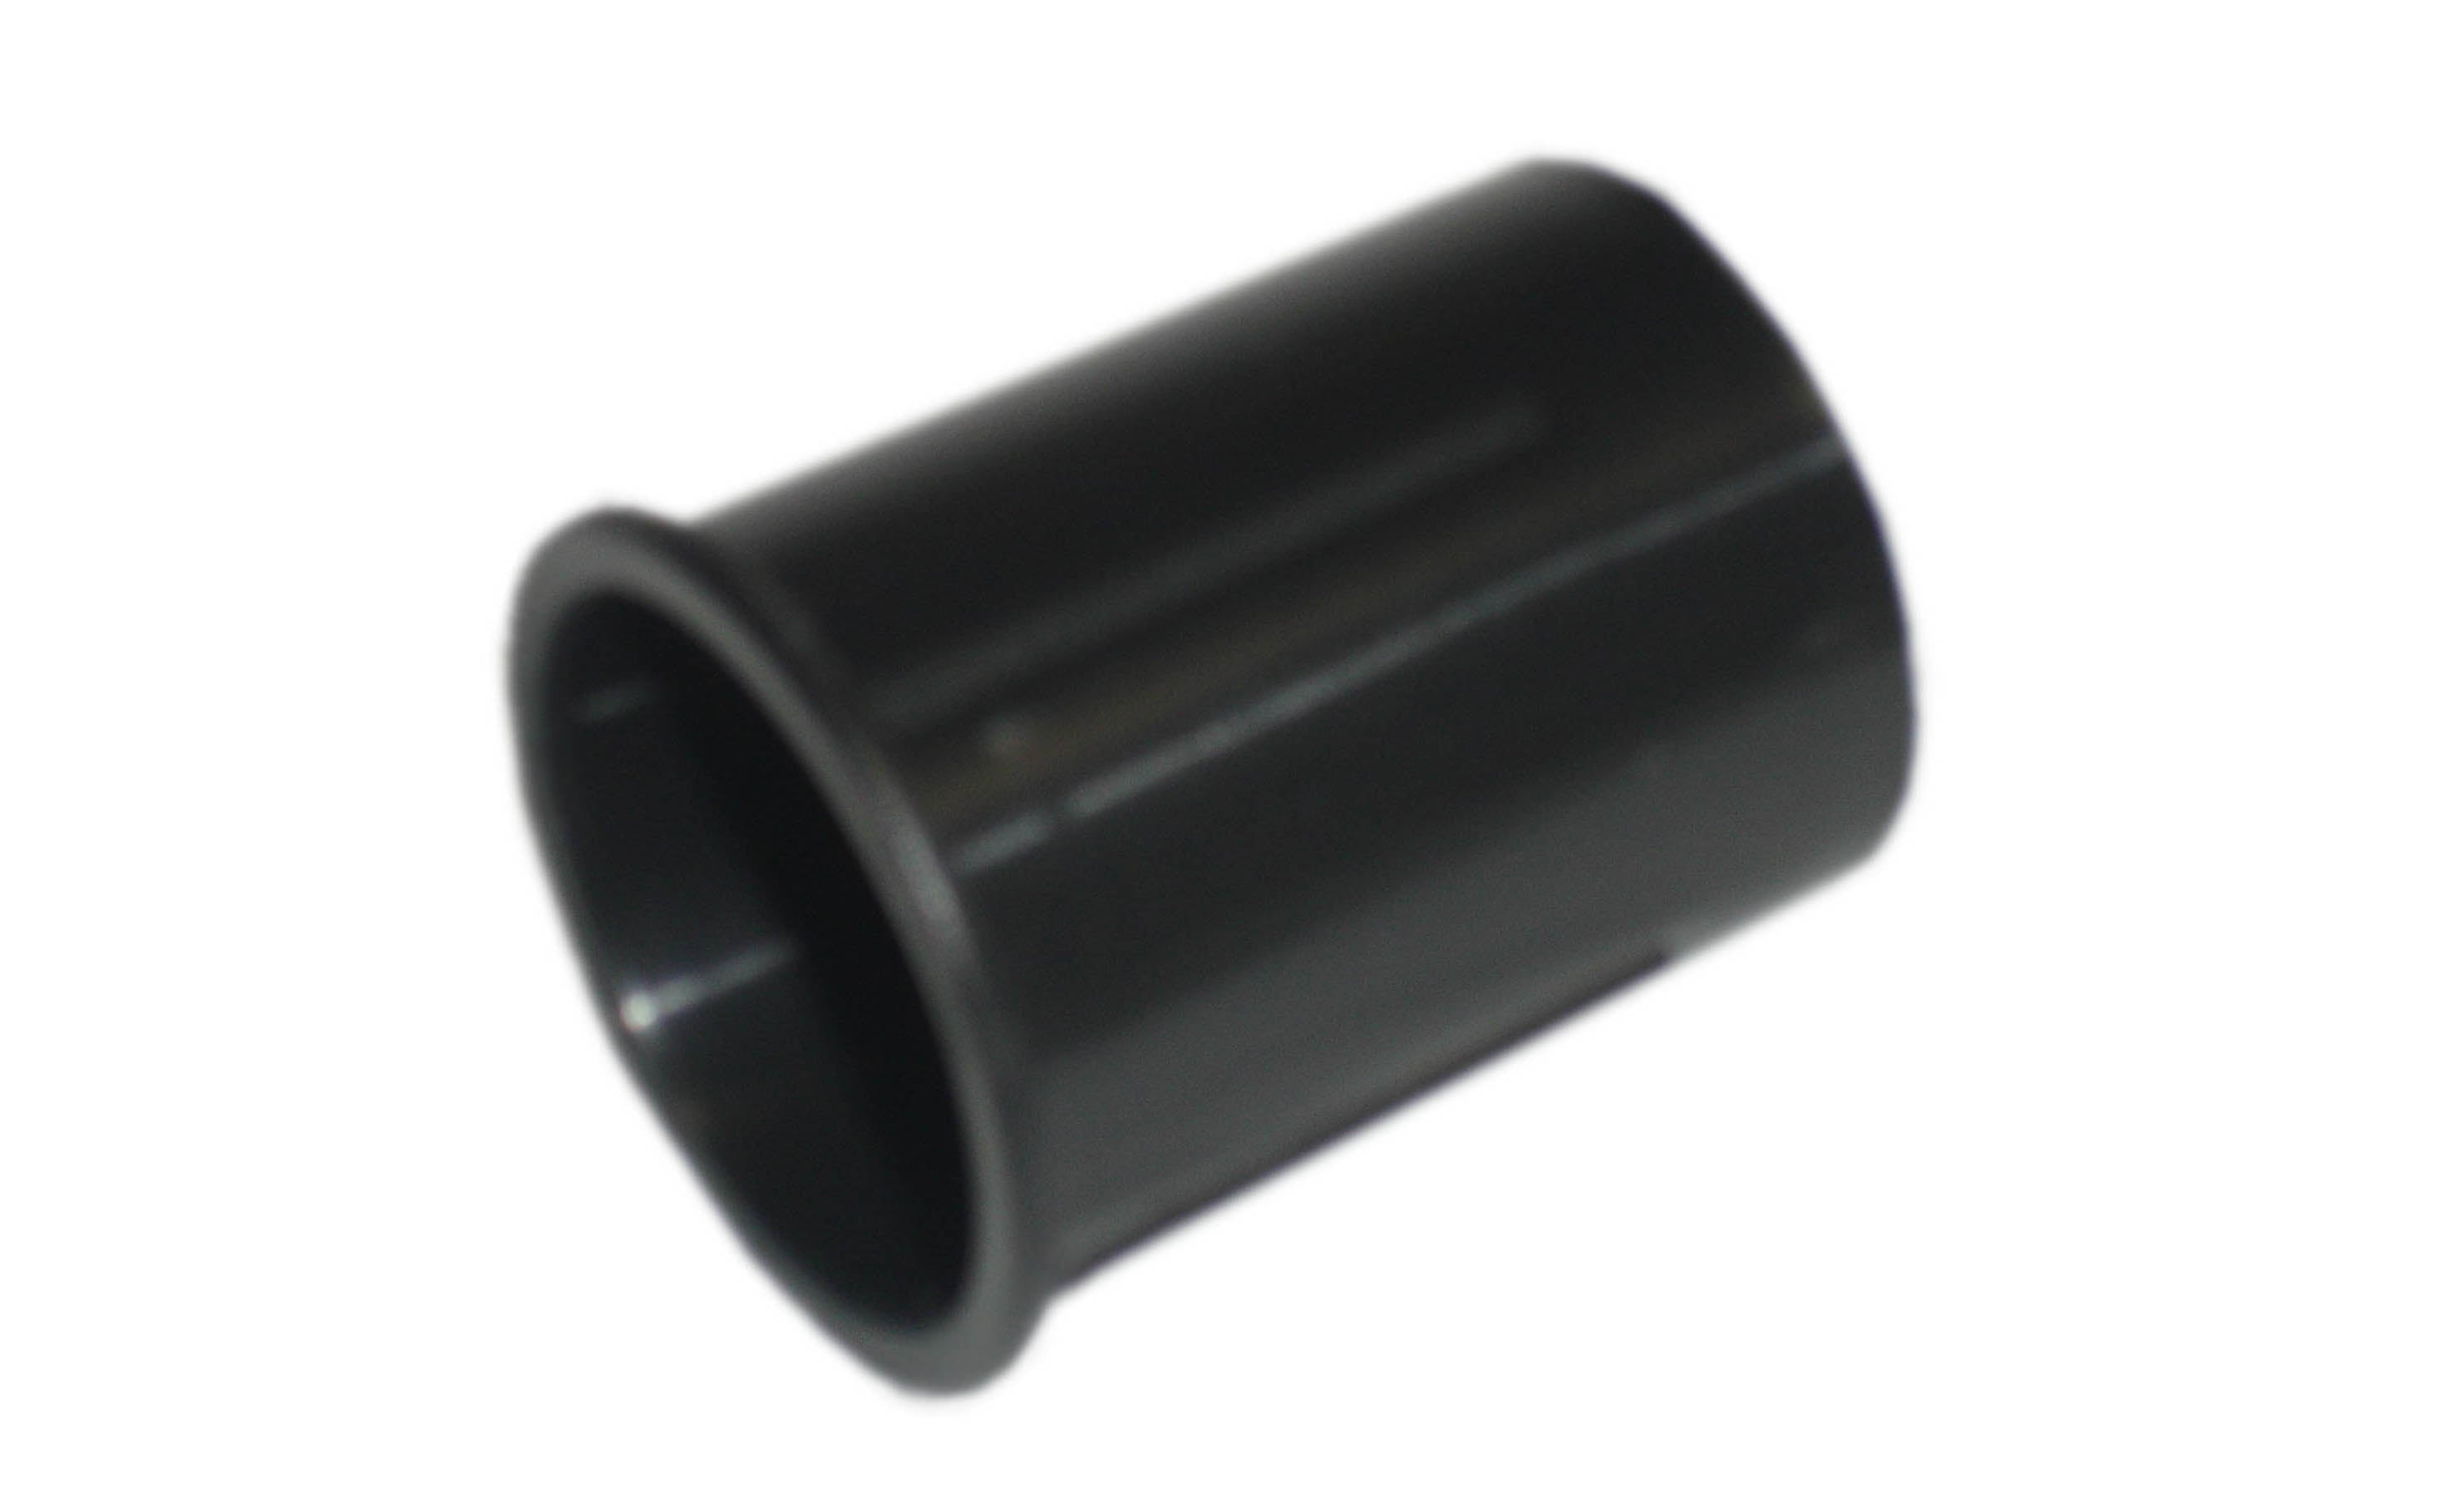 Adaptor Reducer Suit 35mm Neck to 32mm Rod